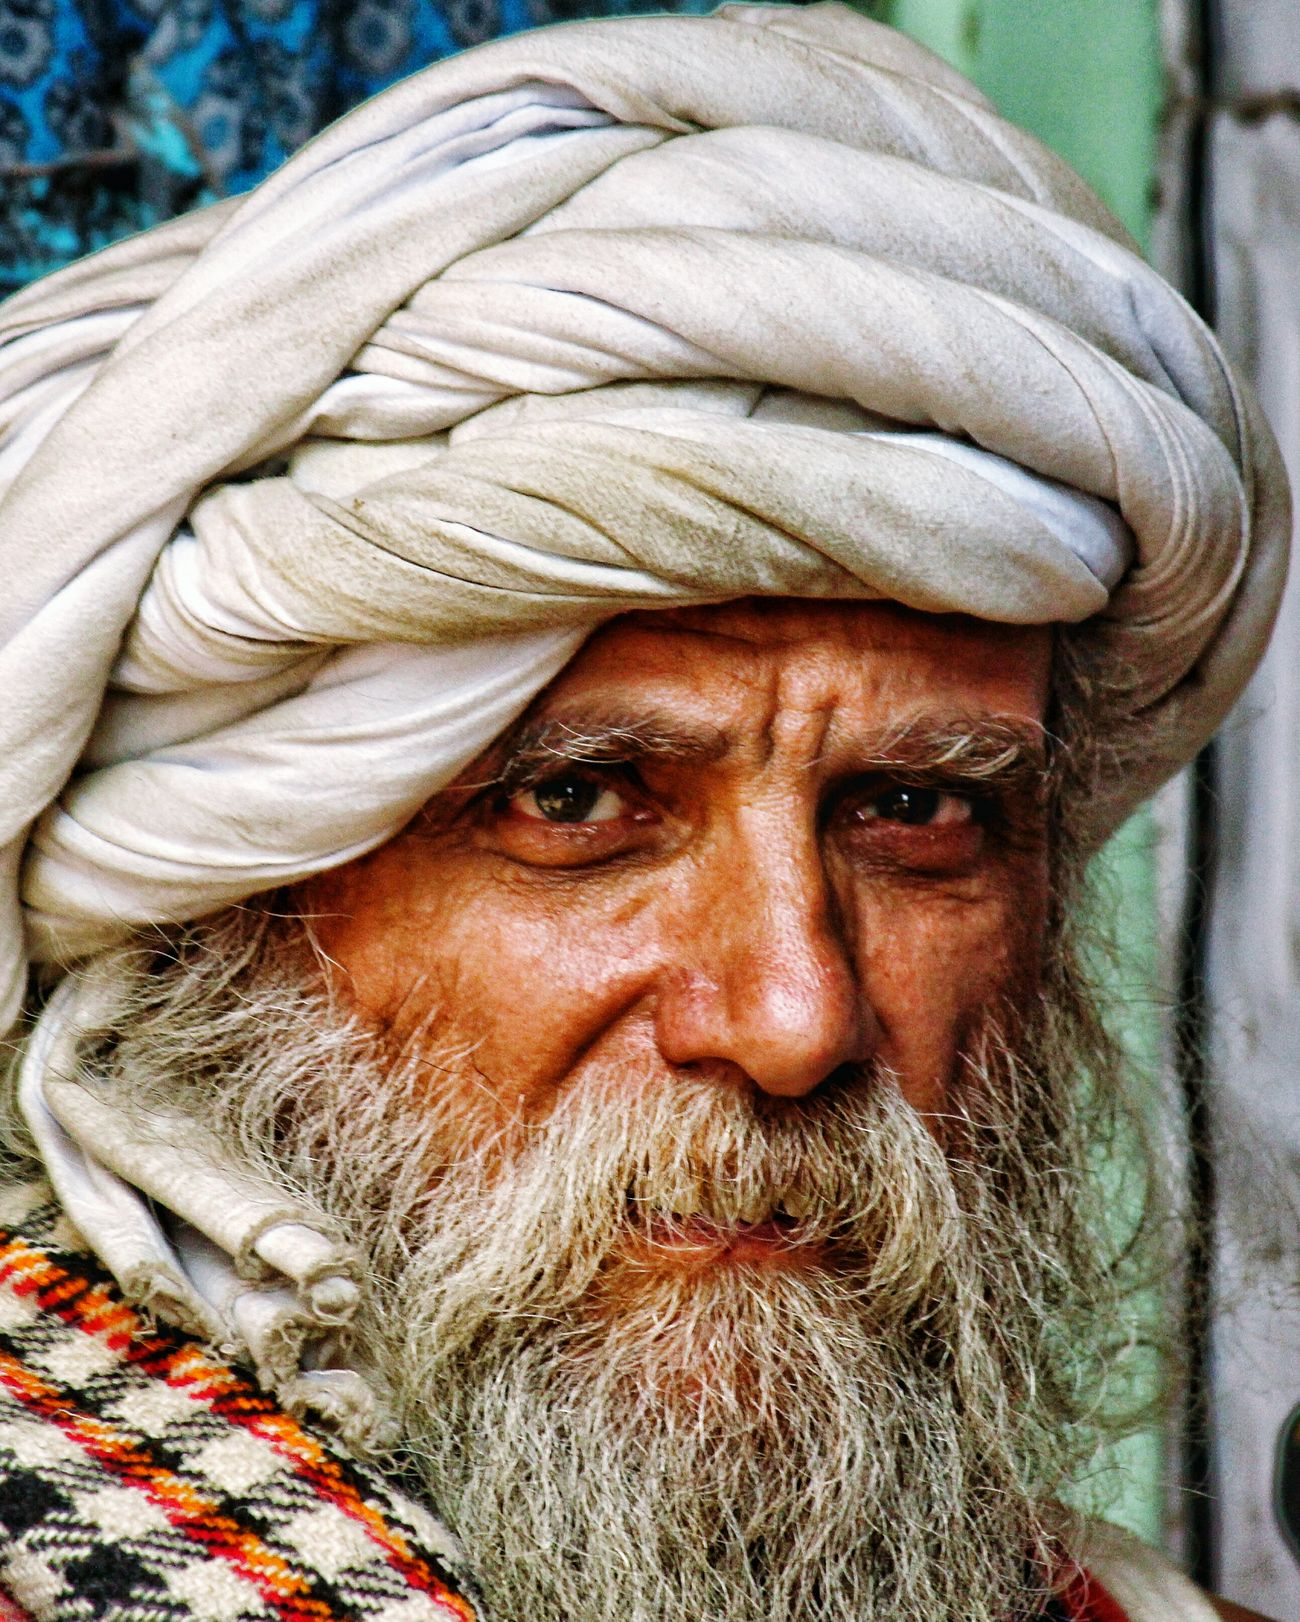 When I see, when I look. I see love, I see expressions. Only Men One Man Only Human Body Part Outdoors Adult People Day Traditional Clothing Lifestyles Close-up Adults Only One Person Portrait Headshot Real People Senior Adult Looking At Camera Red Senior Men Studiophotography Mammal Men Beauty In Nature Sailboat No People